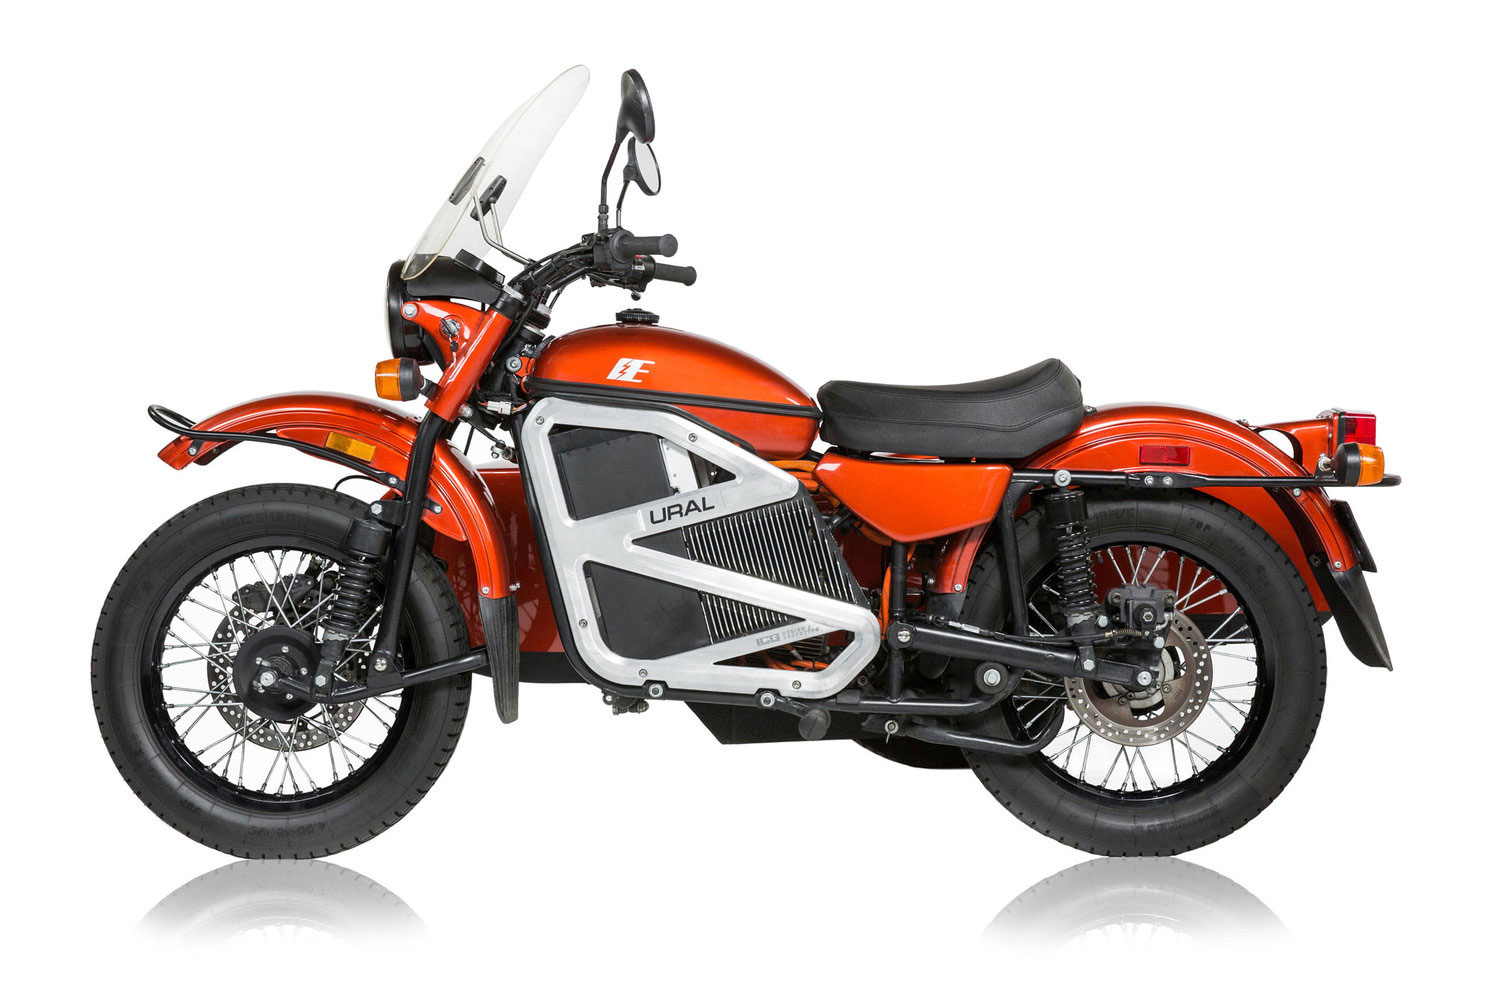 2020 URAL All-Electric Prototype Guide • Total Motorcycle